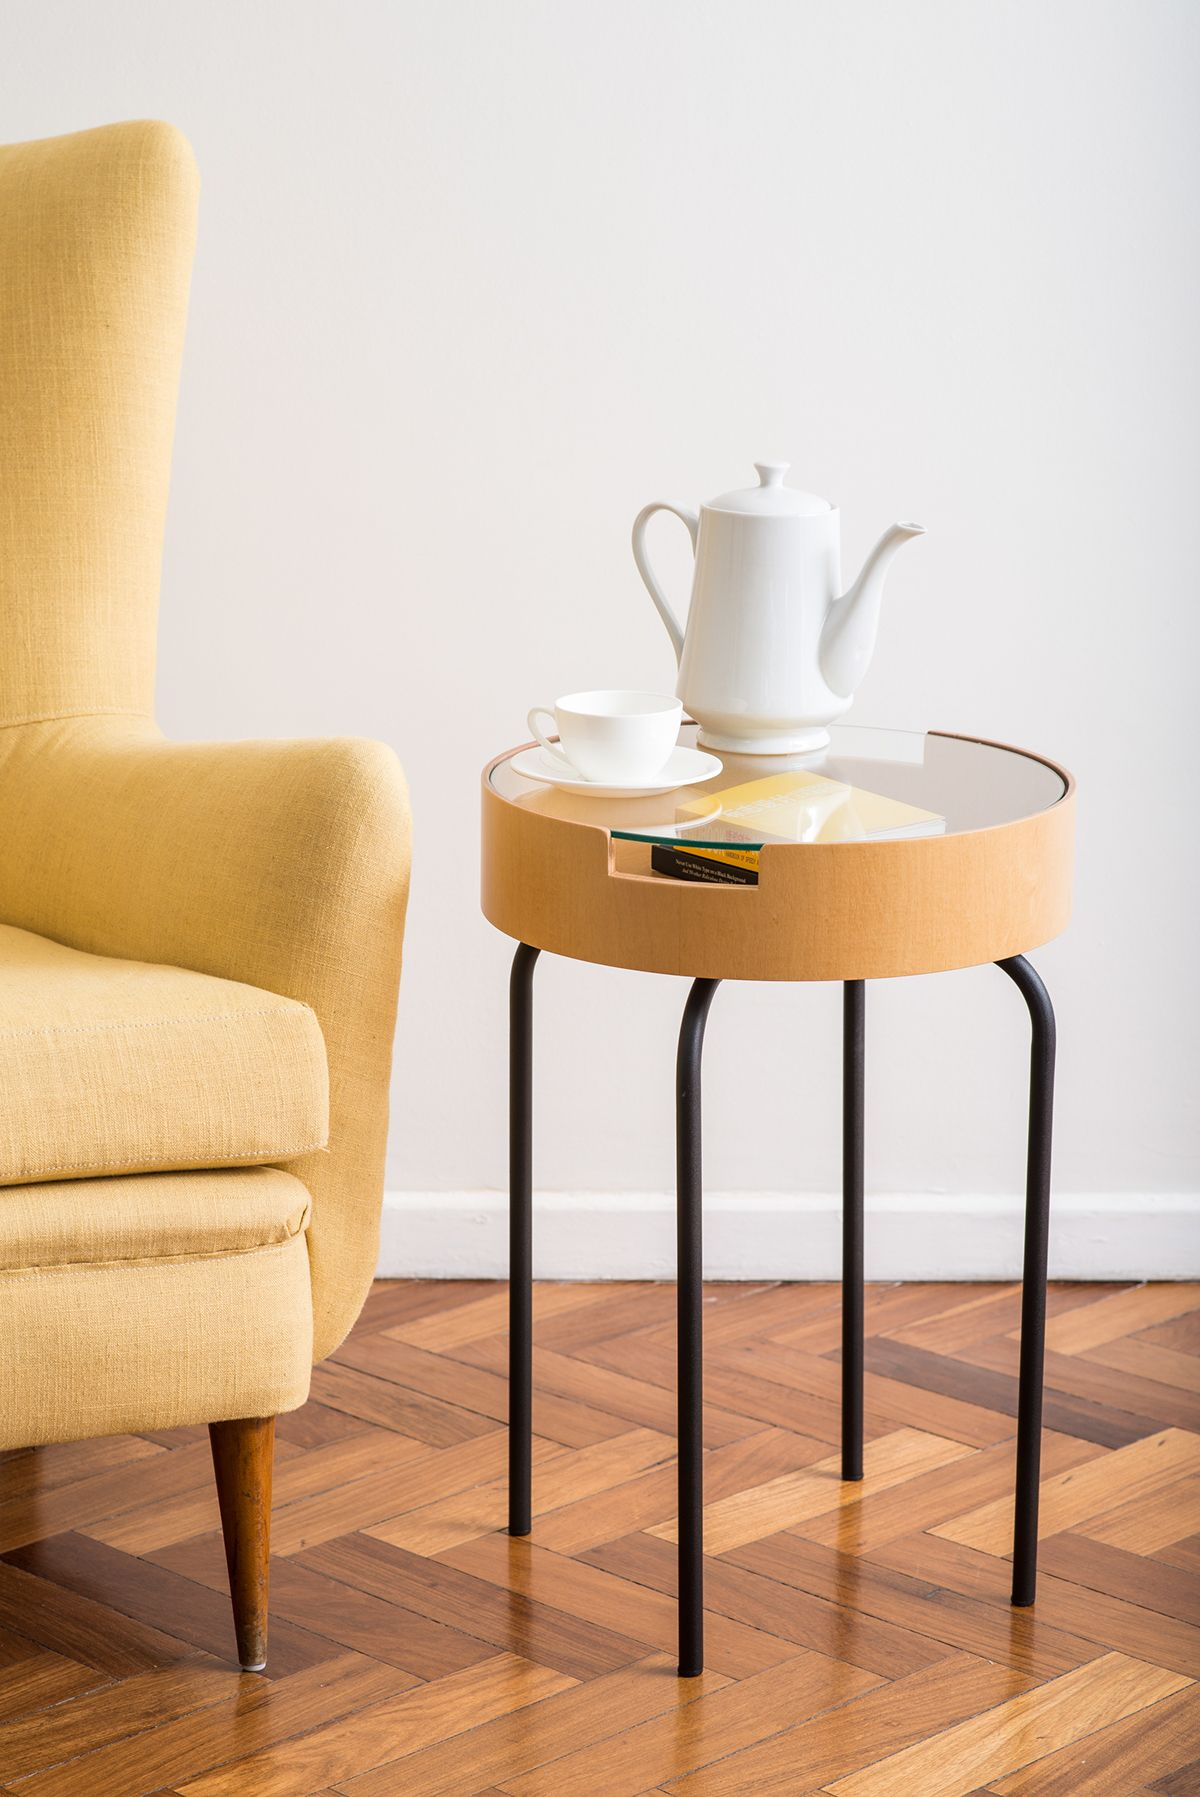 Perkins tables  by DIARIO Product design